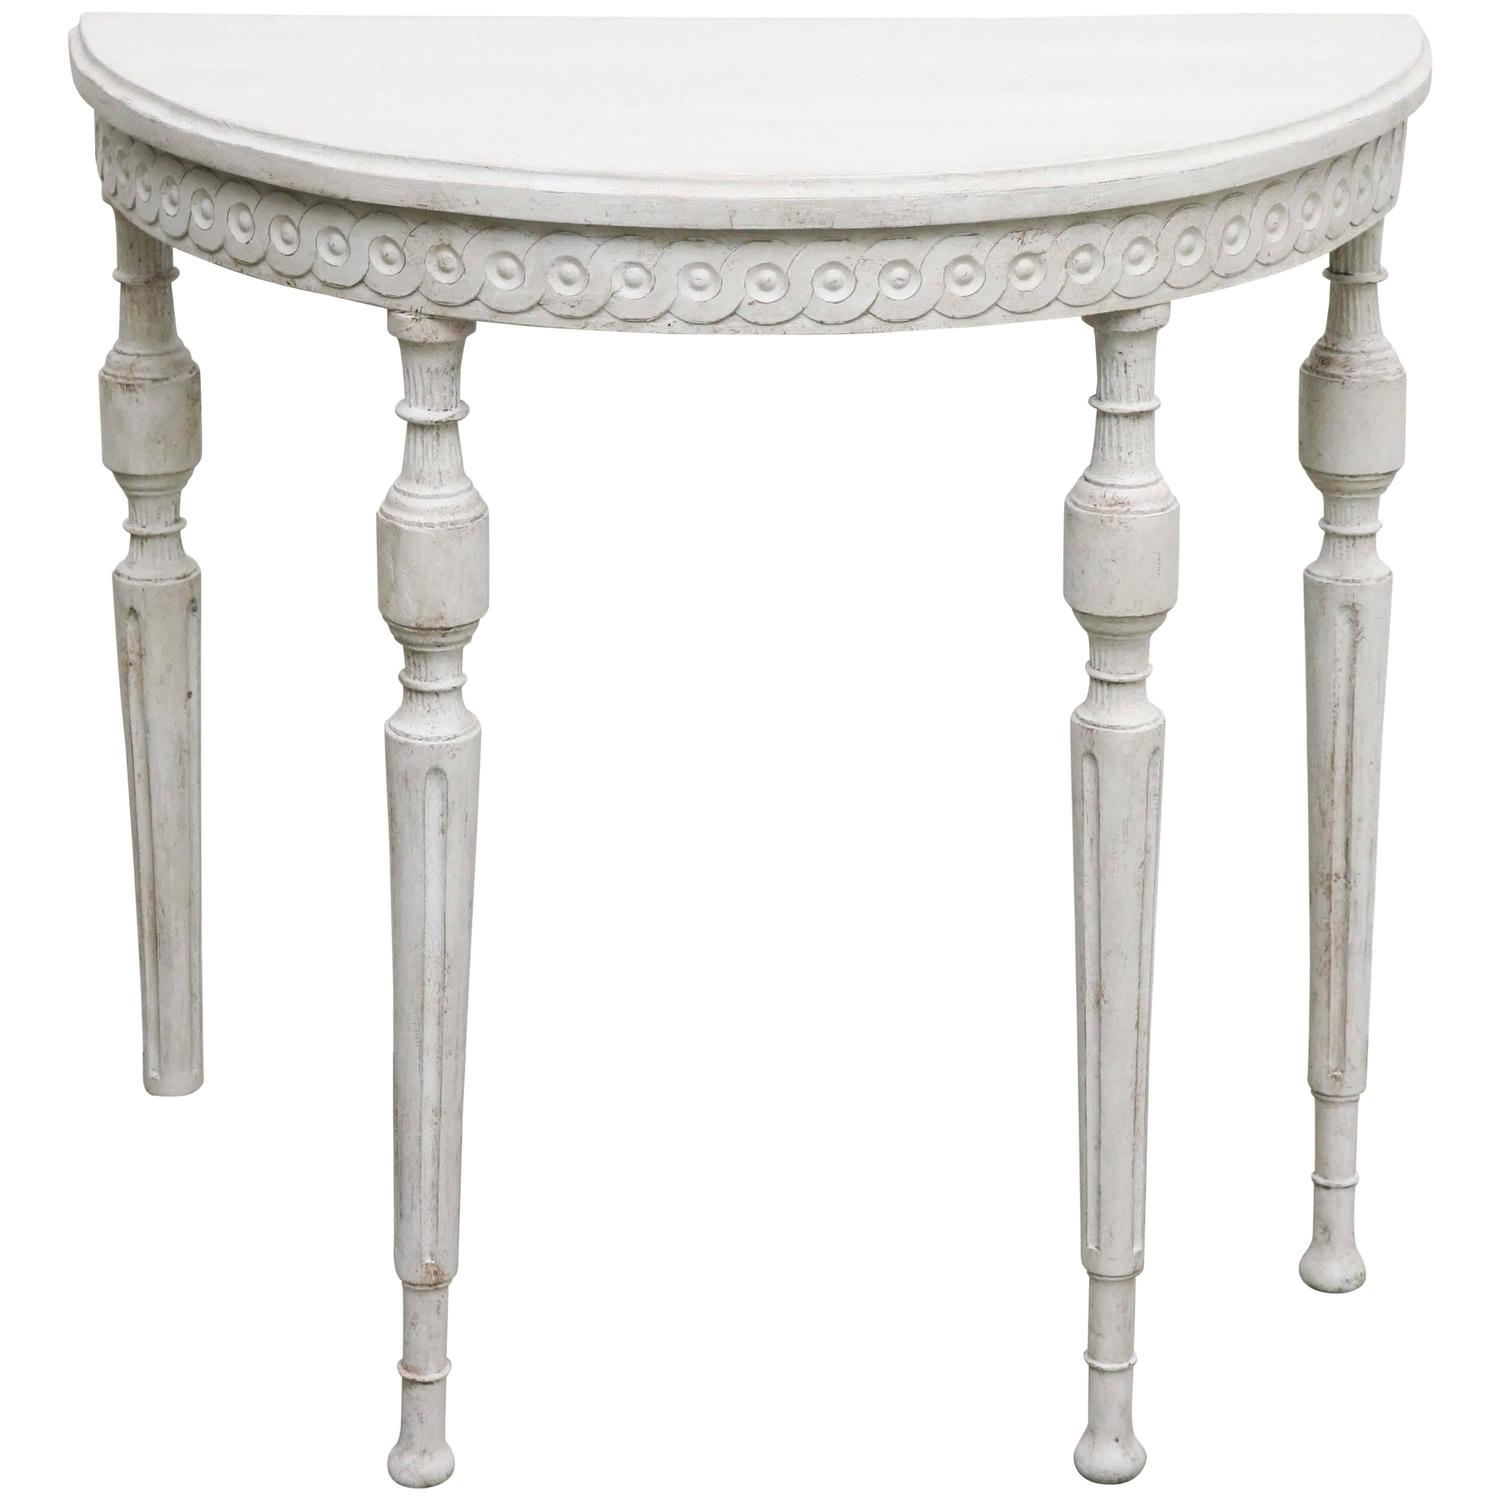 Antique swedish gustavian small painted demilune console table 19th century at 1stdibs - White demilune console table ...